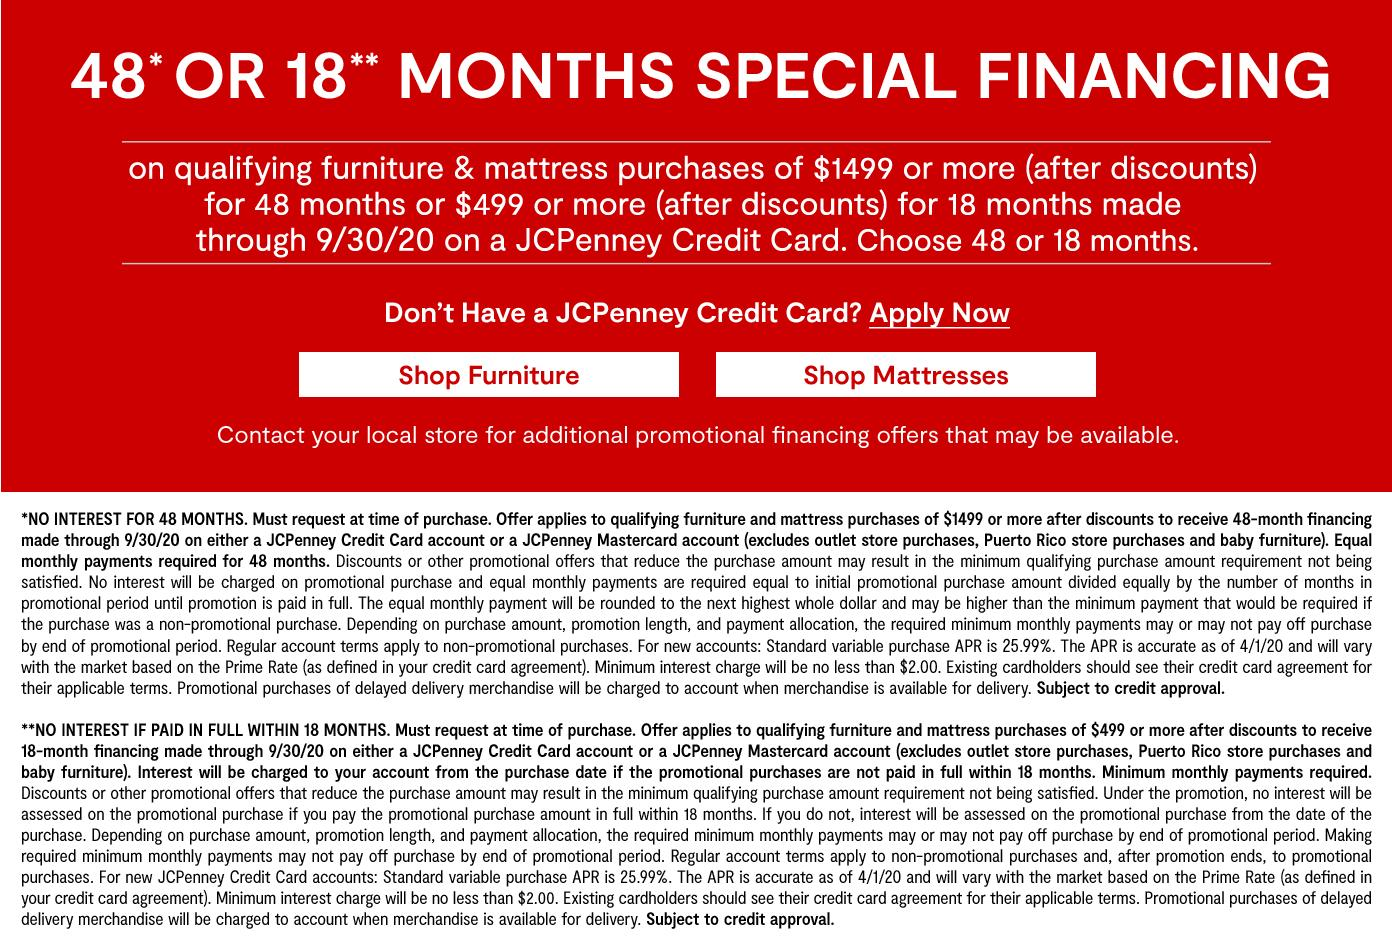 48 or 18 months special financing on qualifying furniture & mattress purchases by 9/30/20 on a JCP Credit Card